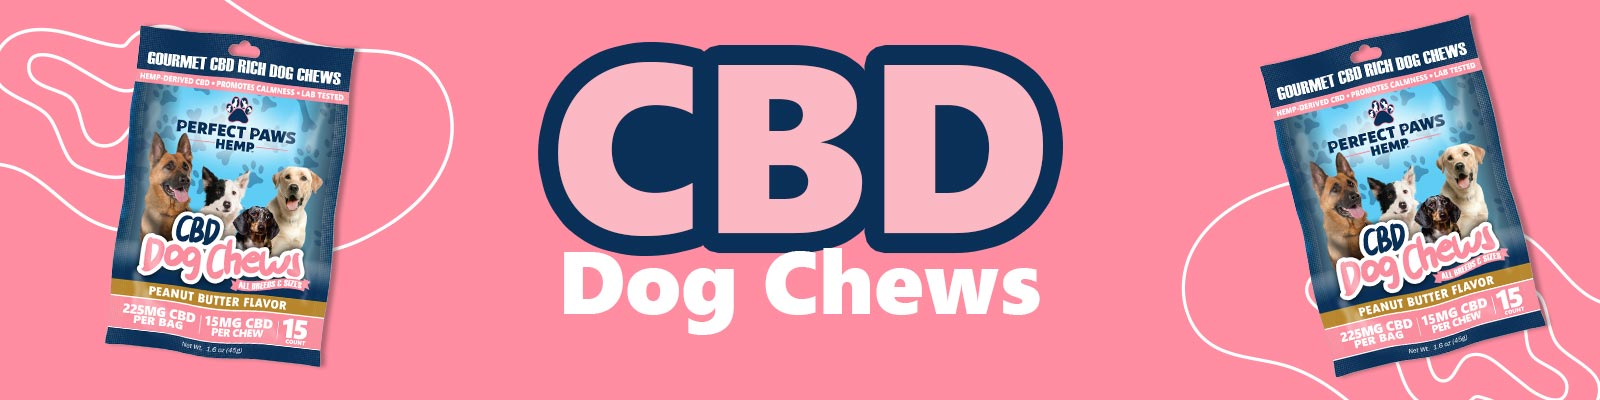 CBD Dog Treats - Chews